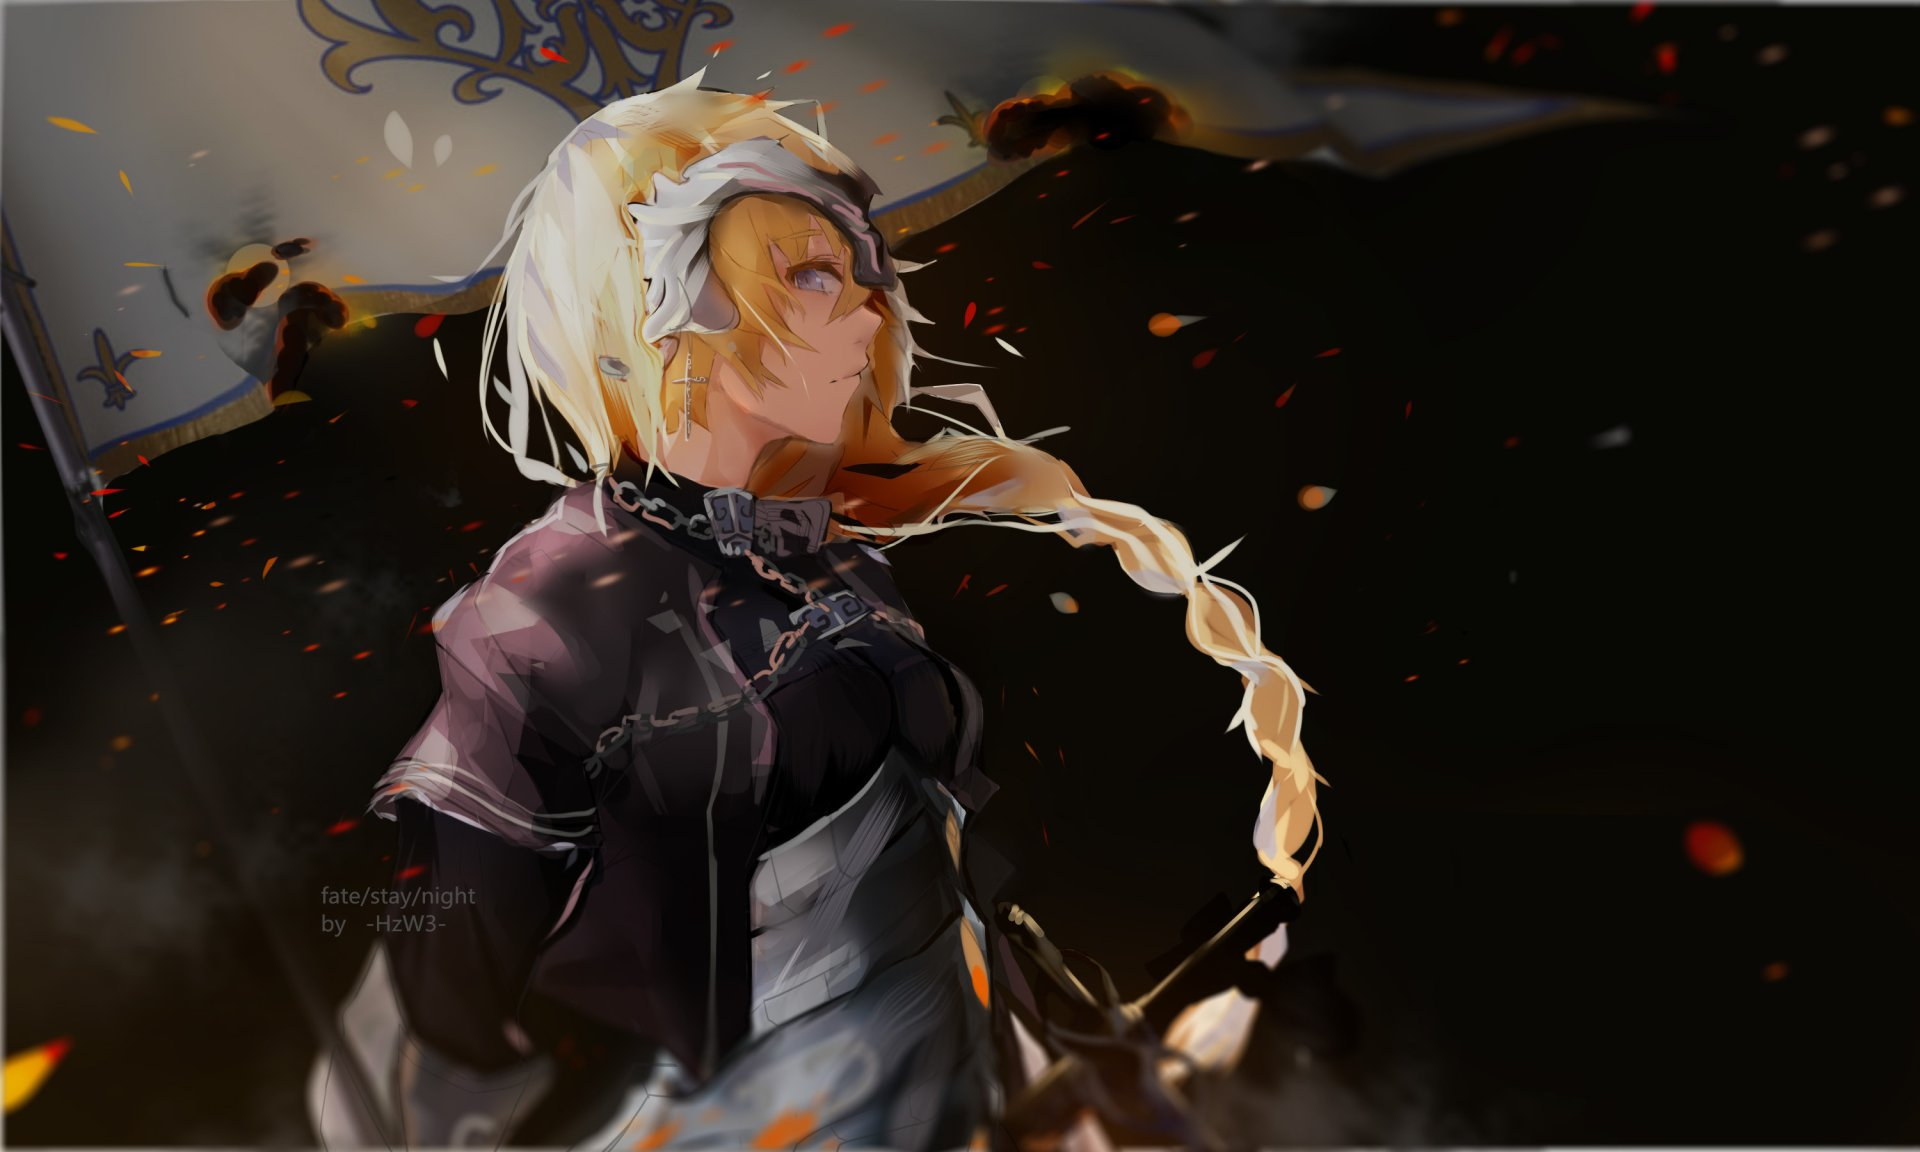 Anime - Fate/Apocrypha  Jeanne d'Arc Girl Braid Blonde Blue Eyes Woman Warrior Fate/Grand Order Ruler (Fate/Grand Order) Wallpaper